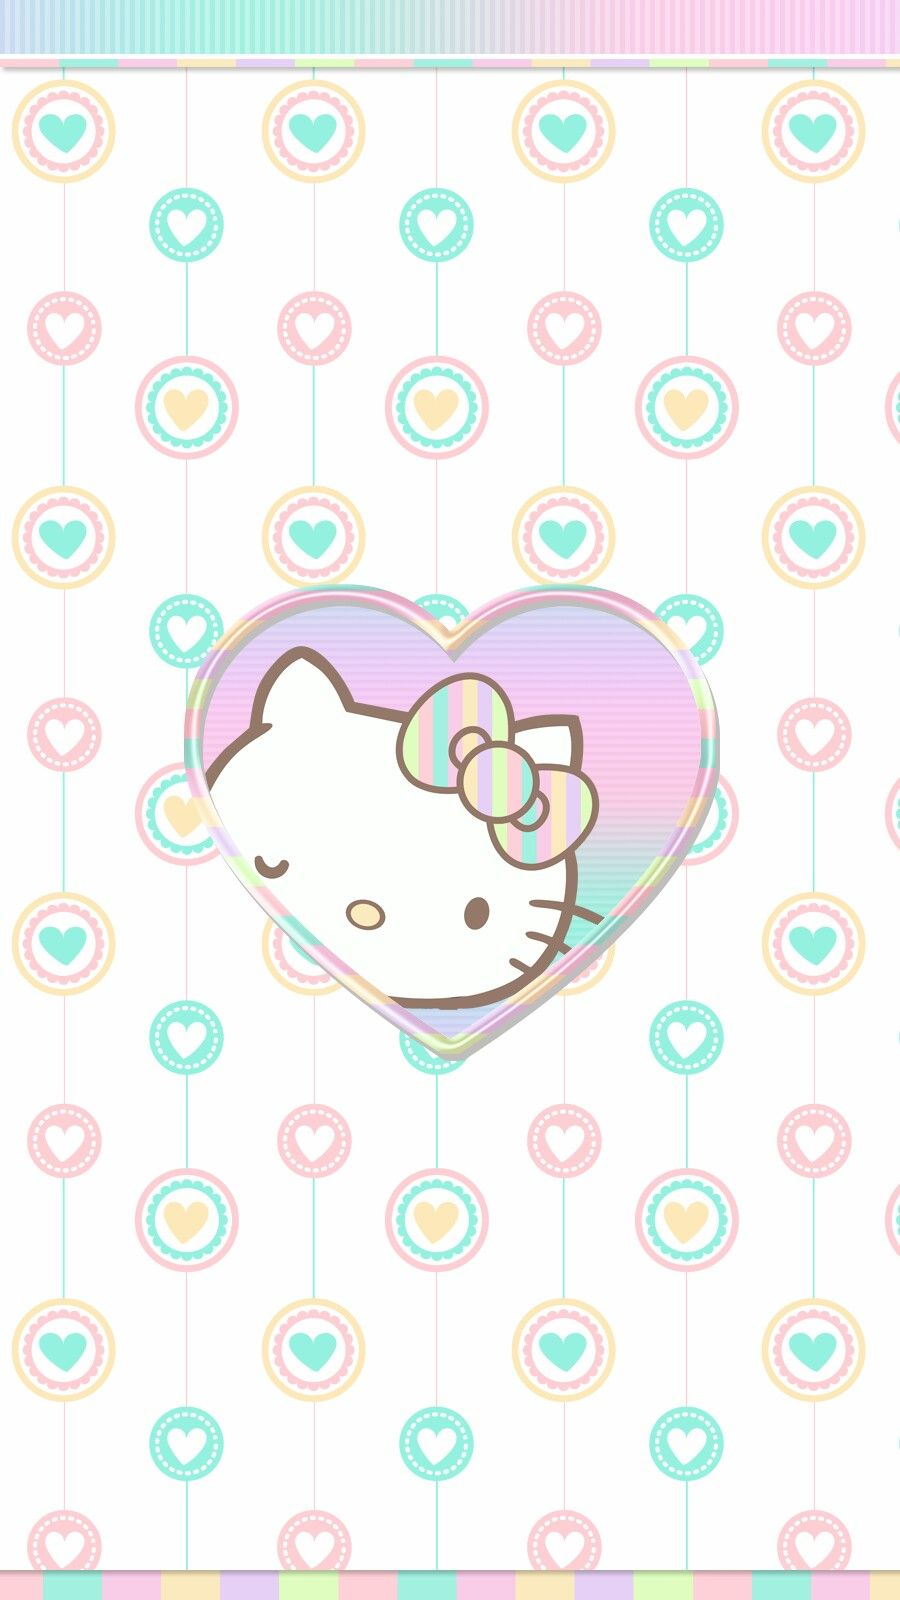 Download Wallpaper Hello Kitty Pastel - c27556e04ae2ed9ea128ffbfb8b64197  Trends_47910.jpg